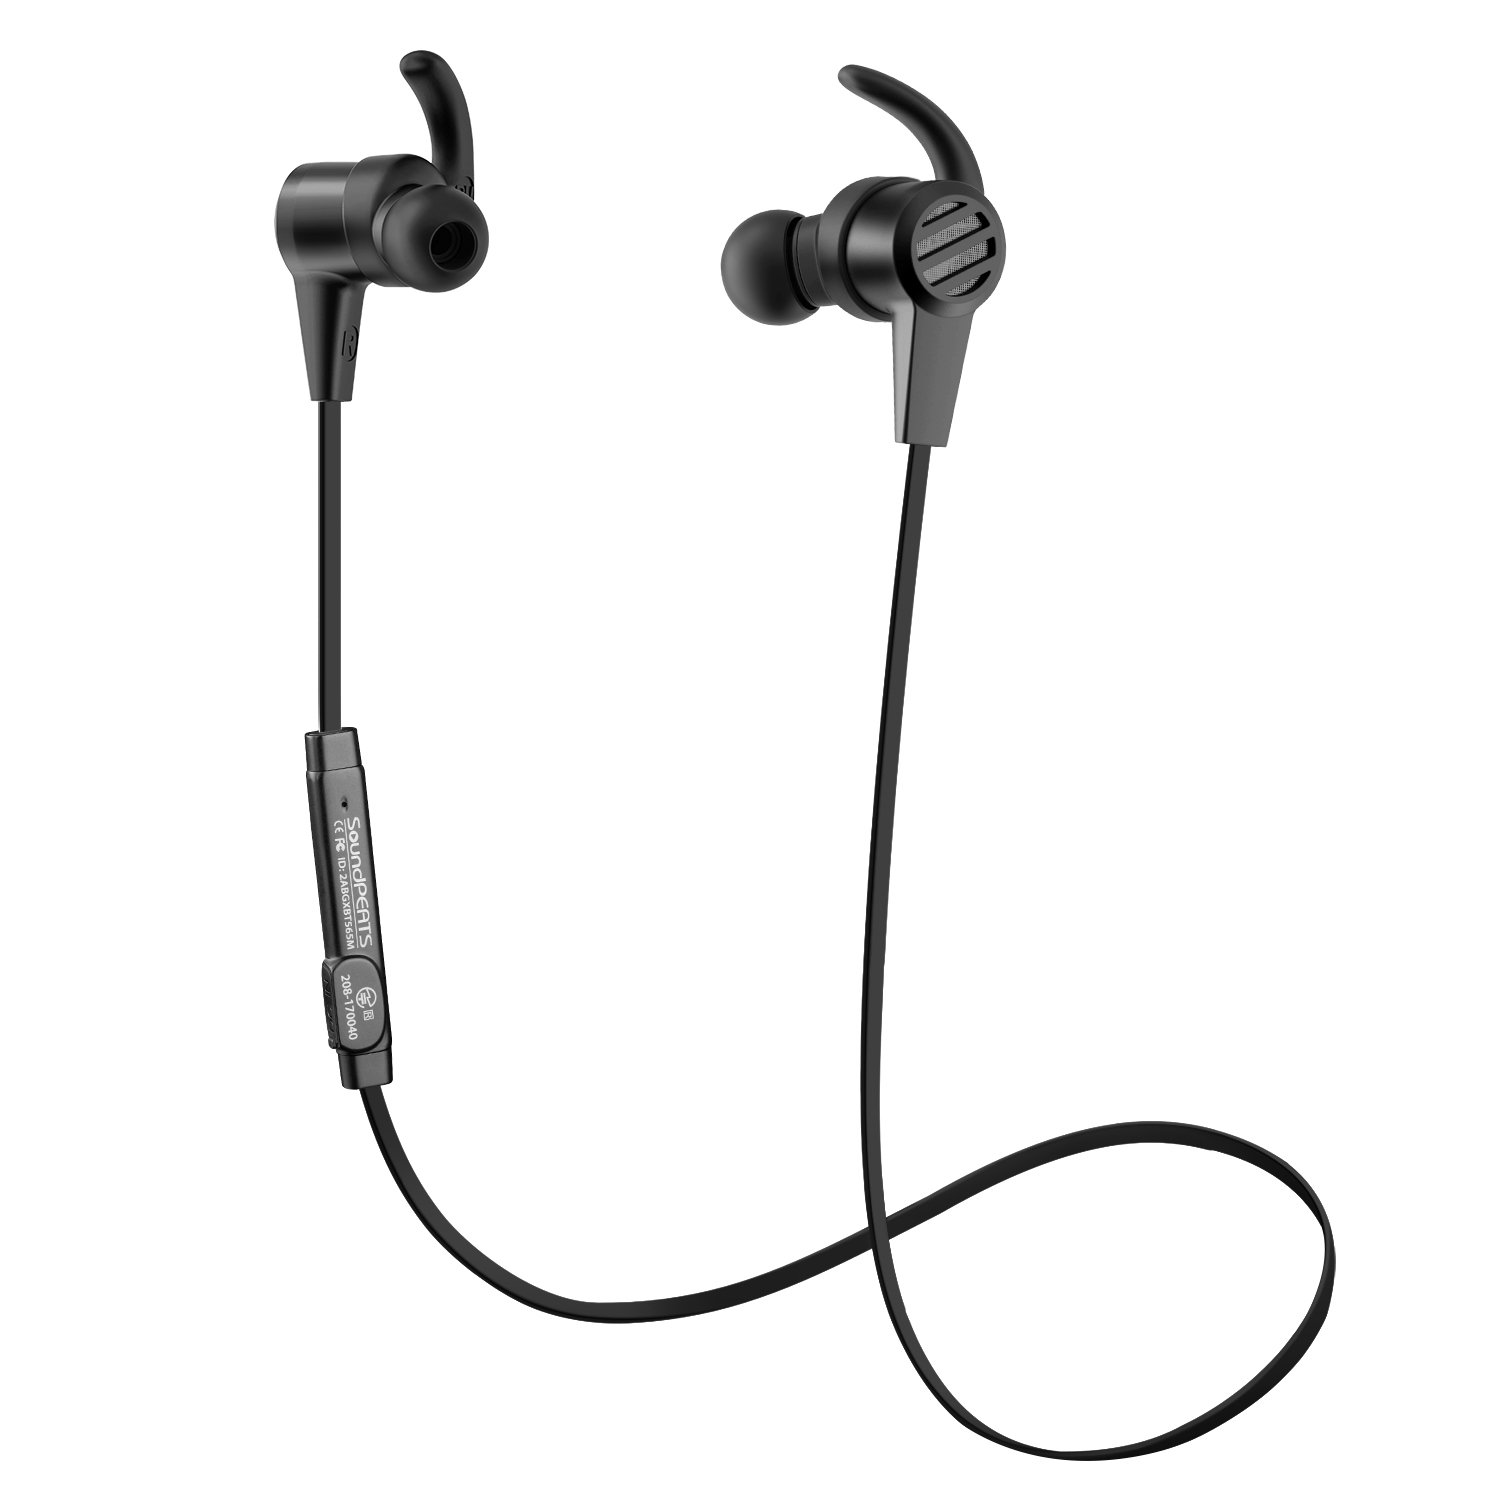 Bluetooth Earphones, SoundPEATS Wireless Magnetic Sport Earphones( Bluetooth 4.1, High Fidelity Sound, APTX, 8 Hours Playtime, Secure Fit for Running)-Black